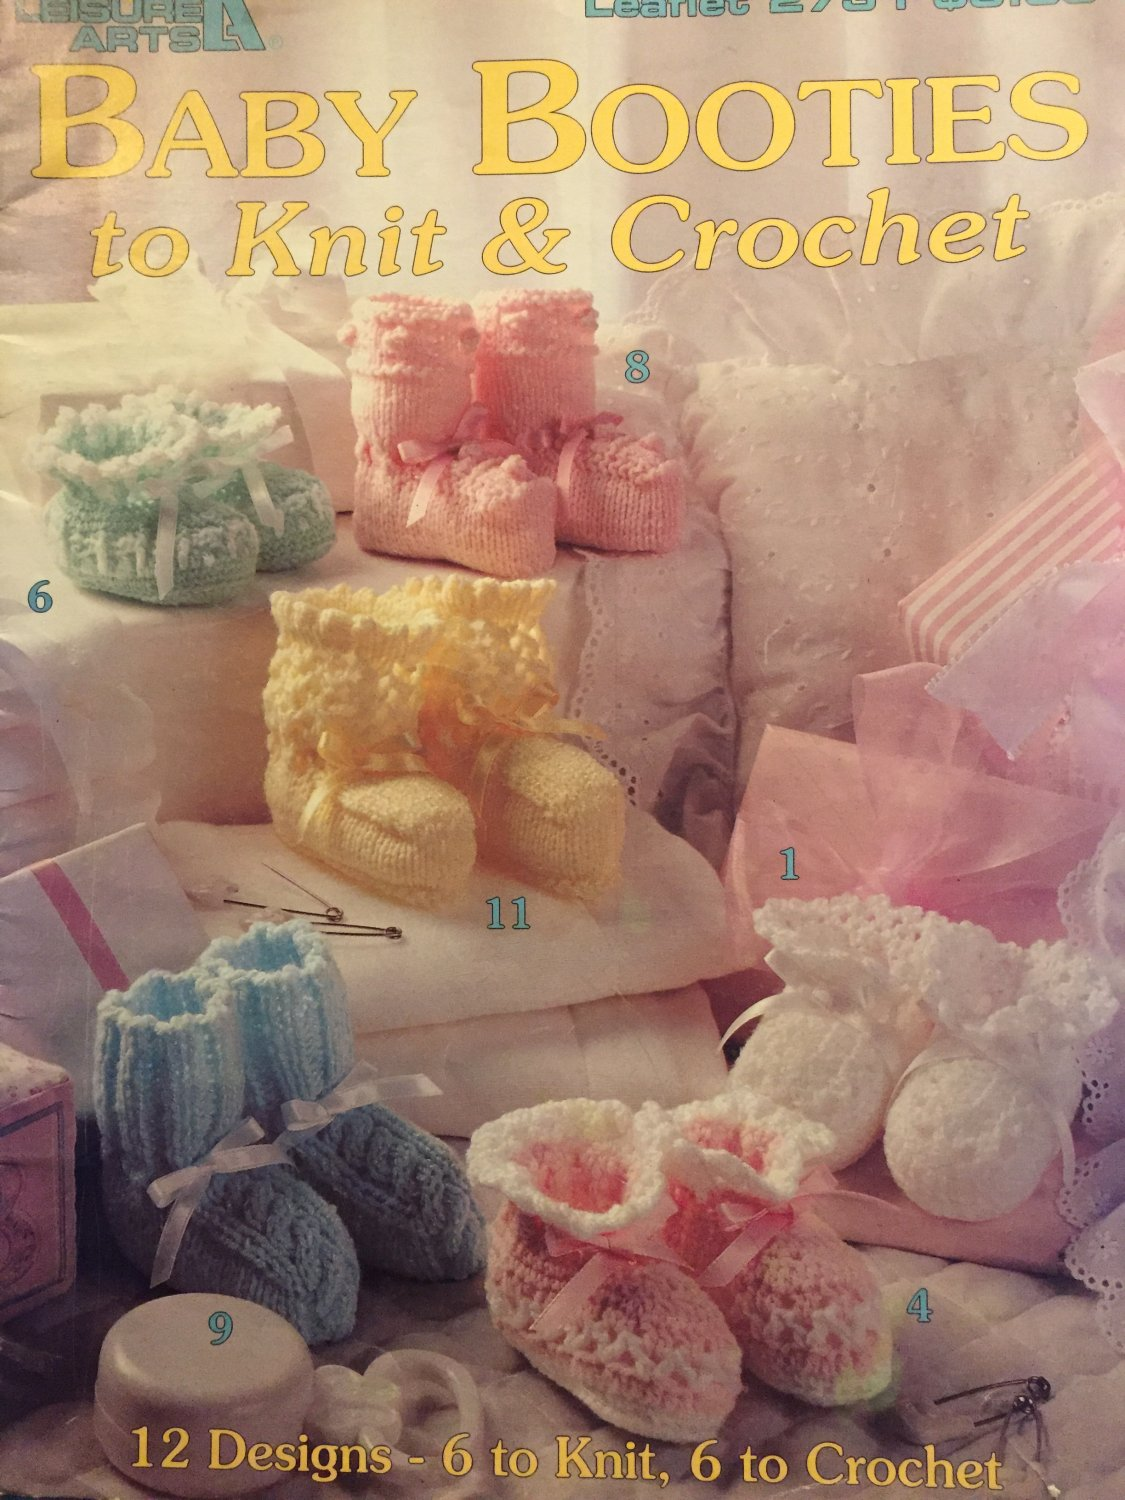 Baby Booties to Knit and Crochet 12 designs Leisure Arts 2731